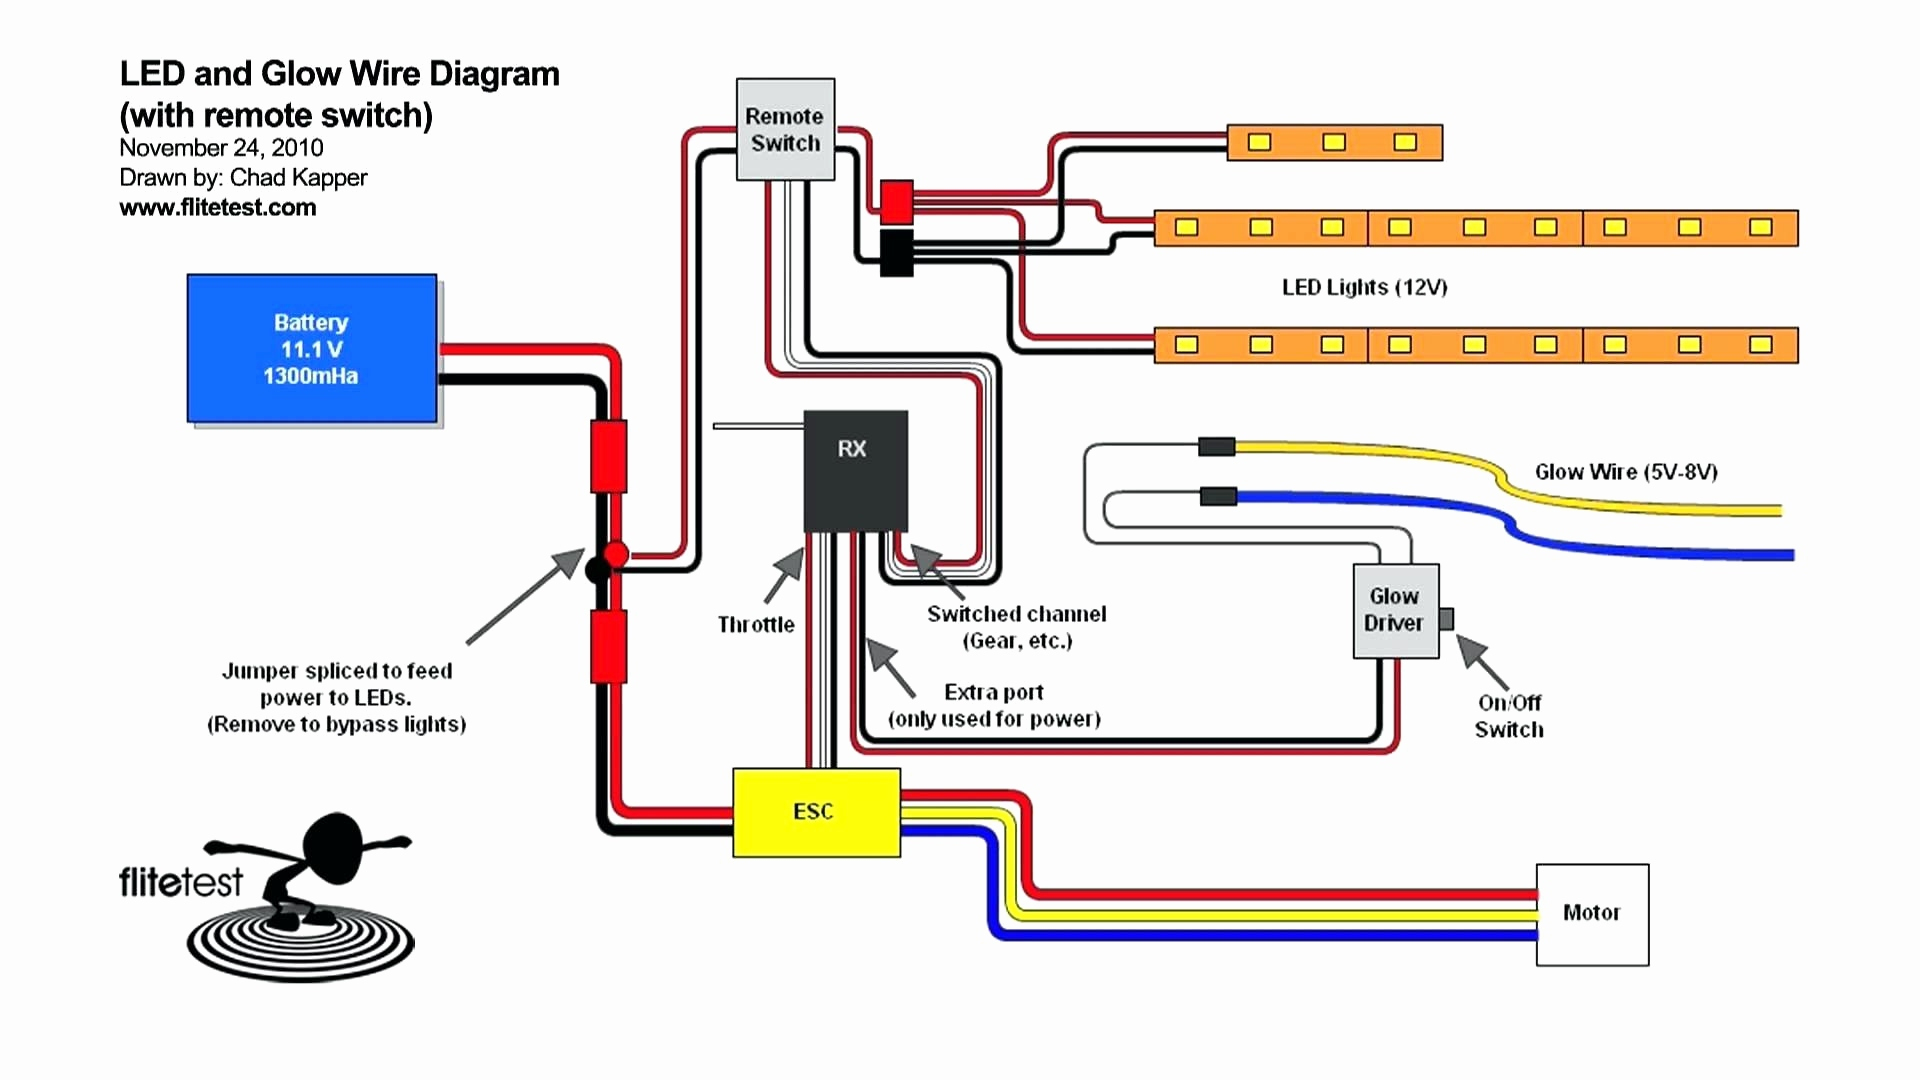 Led Trailer Lights Wiring Diagram | Trailer Wiring Diagram on 3 wire solenoid diagram, 3 wire fan diagram, 3 wire lighting diagram, 3 wire oil diagram, 3 wire grounding diagram, 3 wire plug diagram, 3 way diagram, 3 wire rotary switch, 3 wire distributor, 3 wire pump diagram, 3 wire circuit diagram, 3 wire regulator, 14 3 wire diagram, 3 wire charging system, 3 wire electrical wiring, 3 phase 4 wire diagram, 3 wire sensor diagram, 3 wire switch diagram, 3 wire control diagram, 3 wire electric diagram,